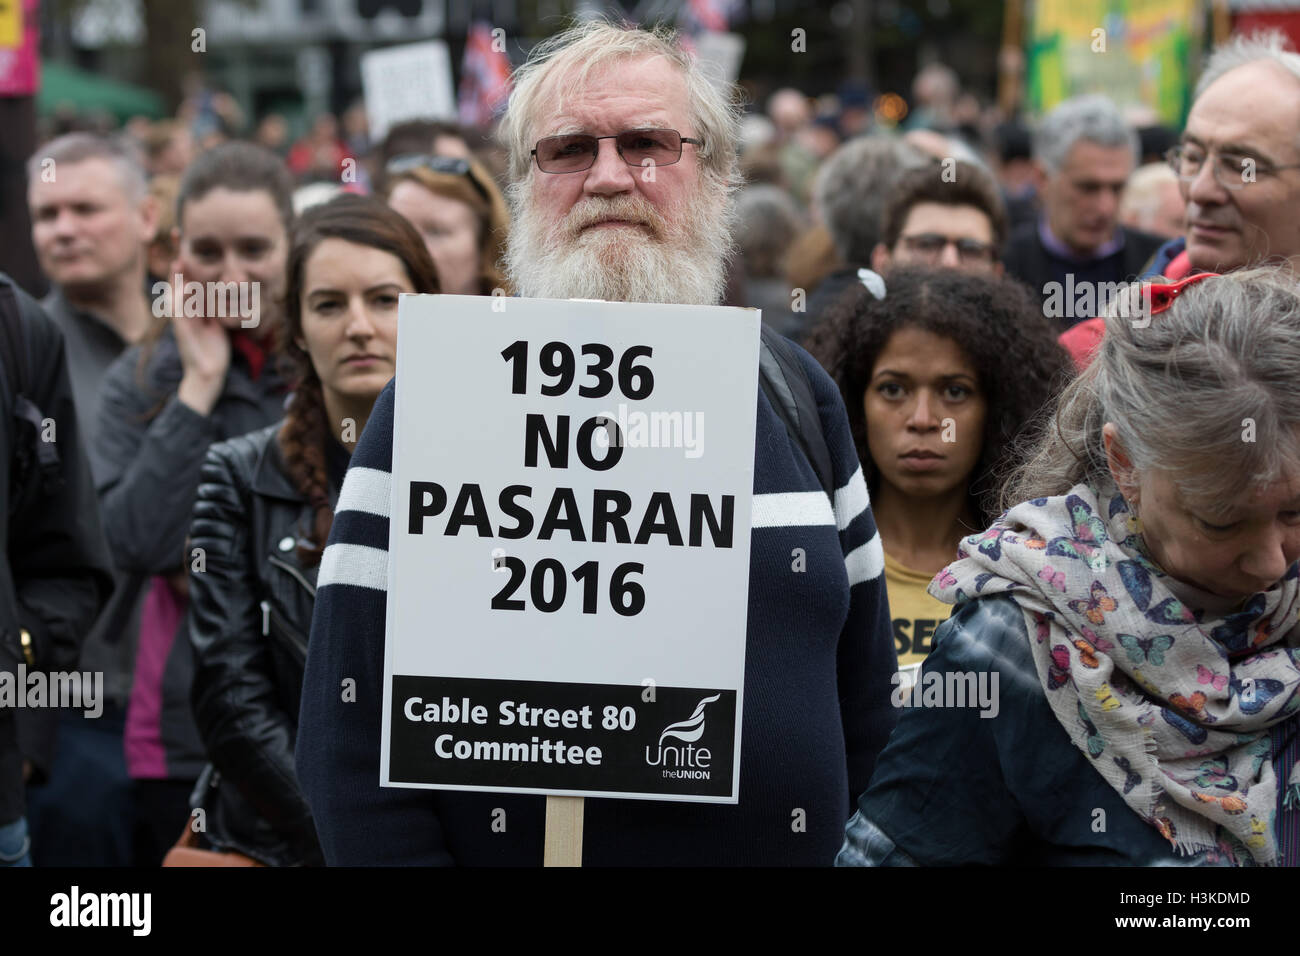 London, UK. 9th October 2016. Socialists, Trade Unionists, Jewish and anti racism groups take part in a march and - Stock Image